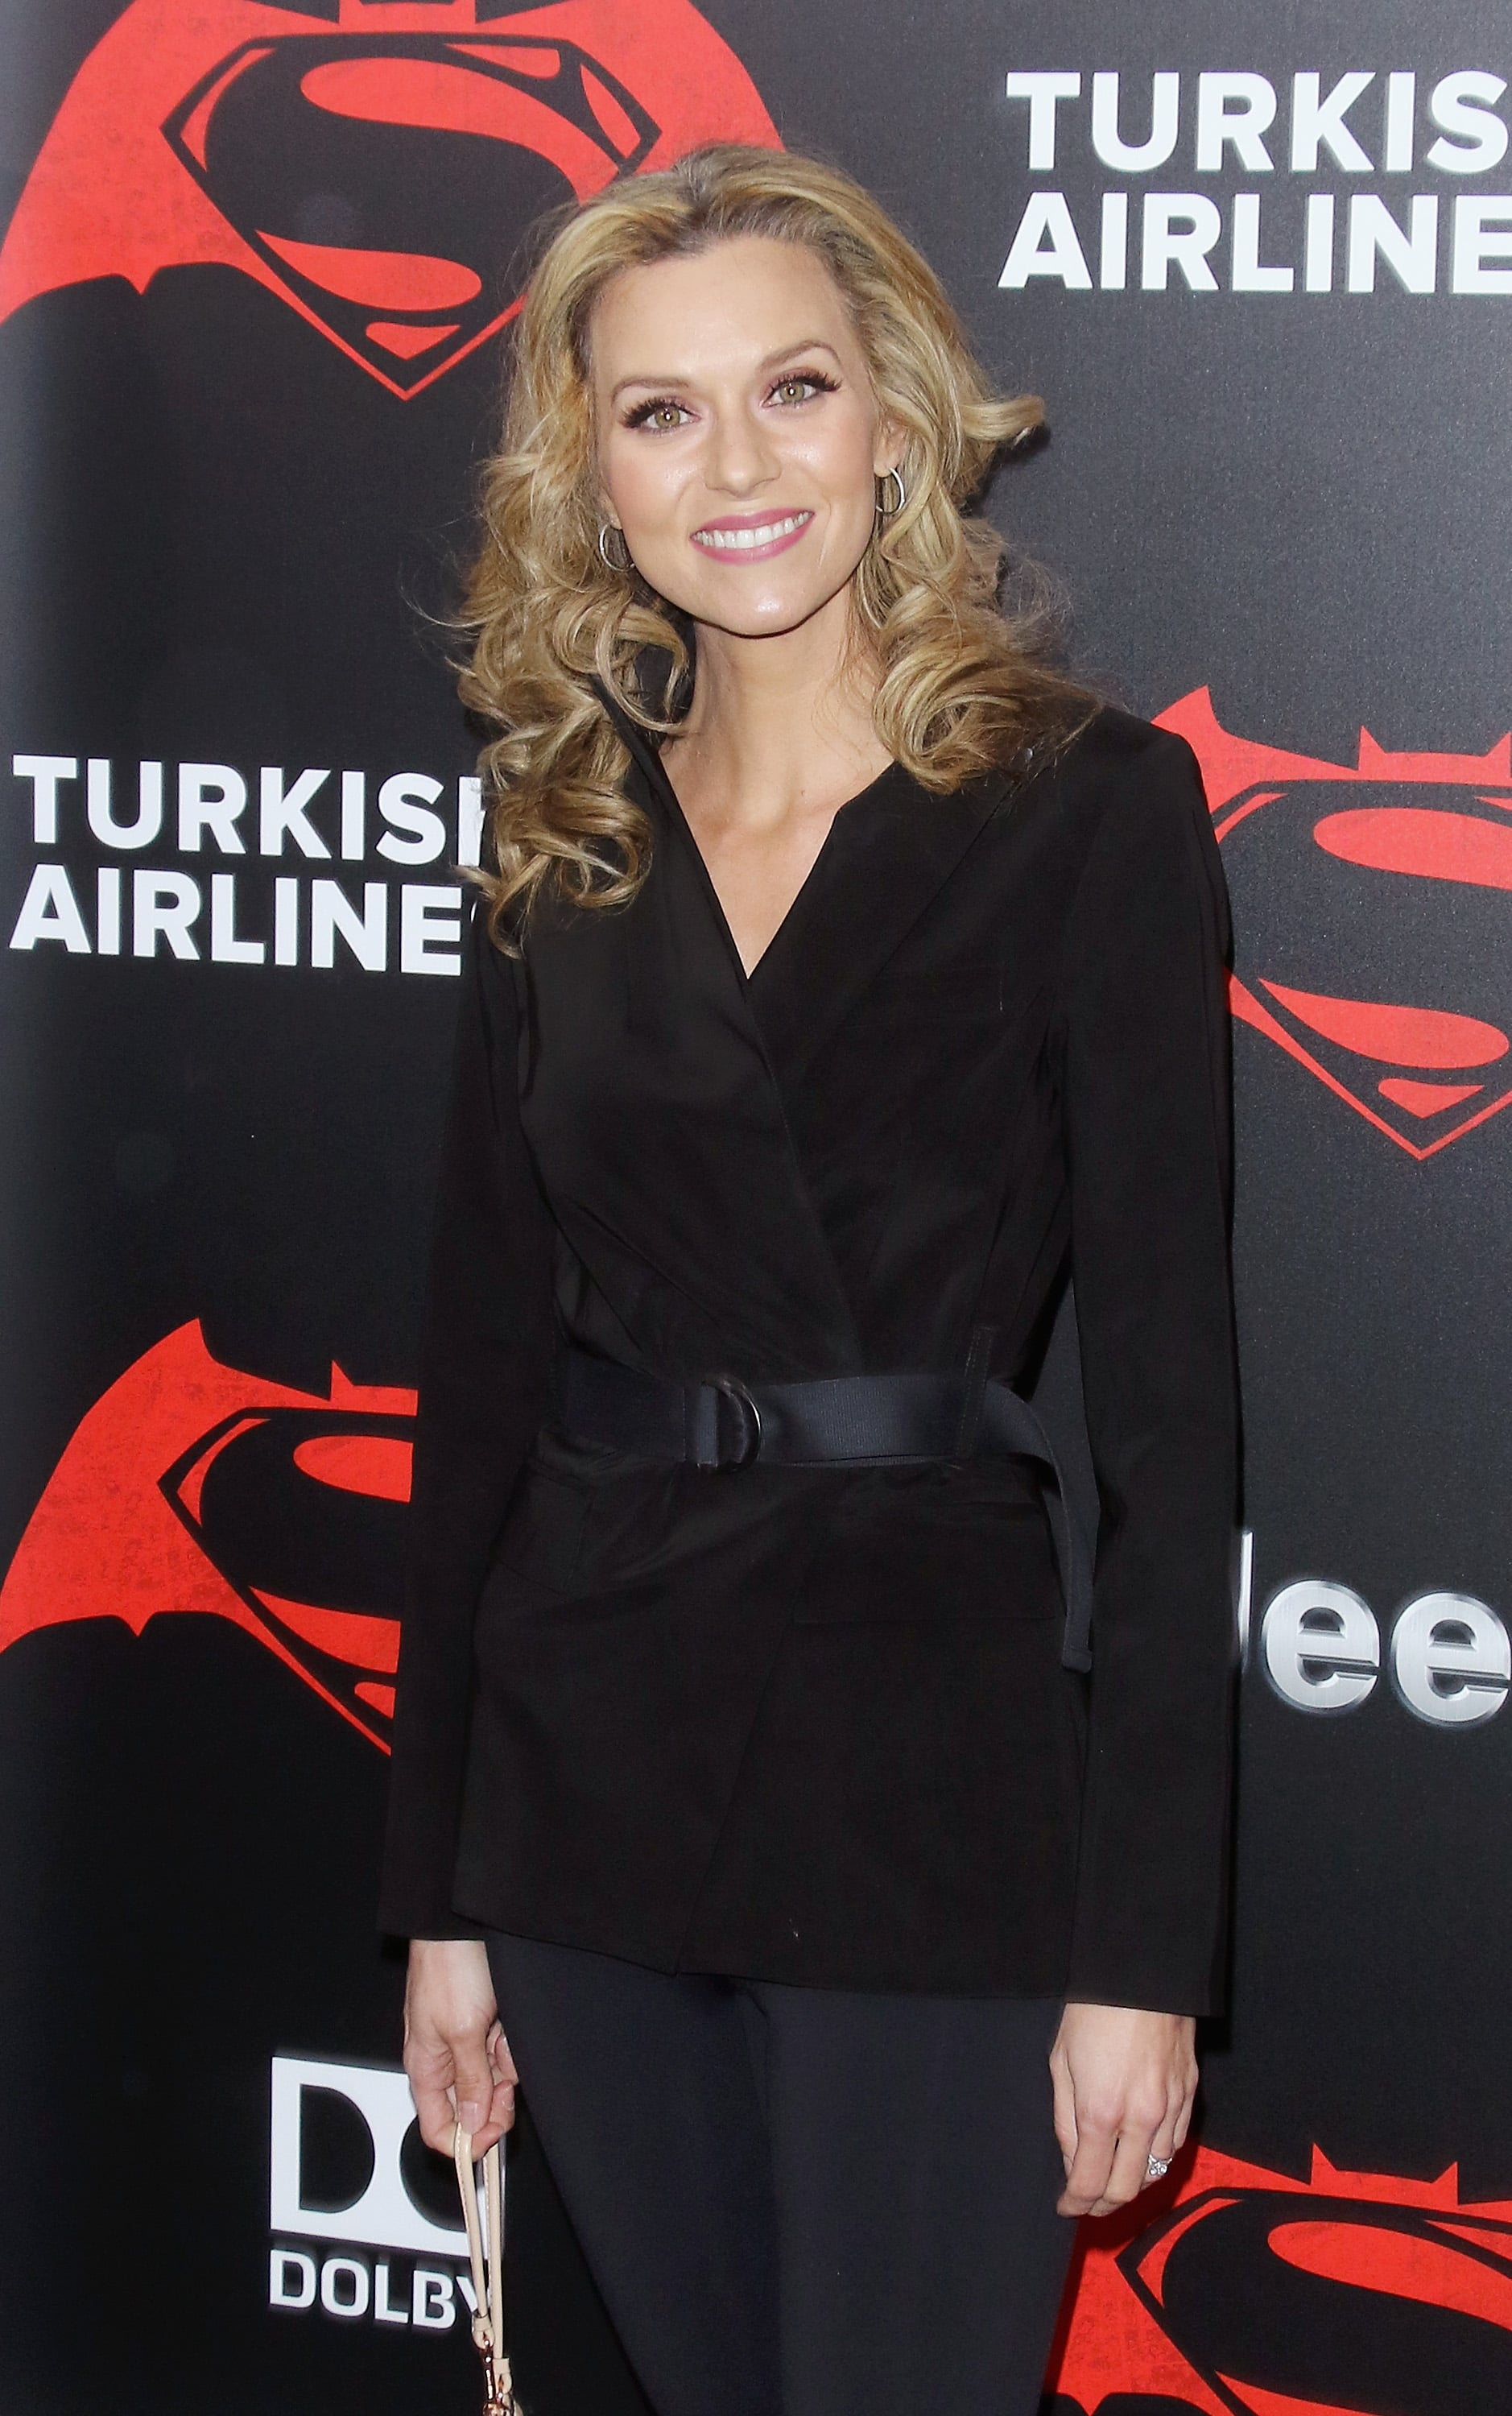 Jeffrey Dean Morgan's girlfriend Hilarie Burton with a diamond ring (possible wedding ring)